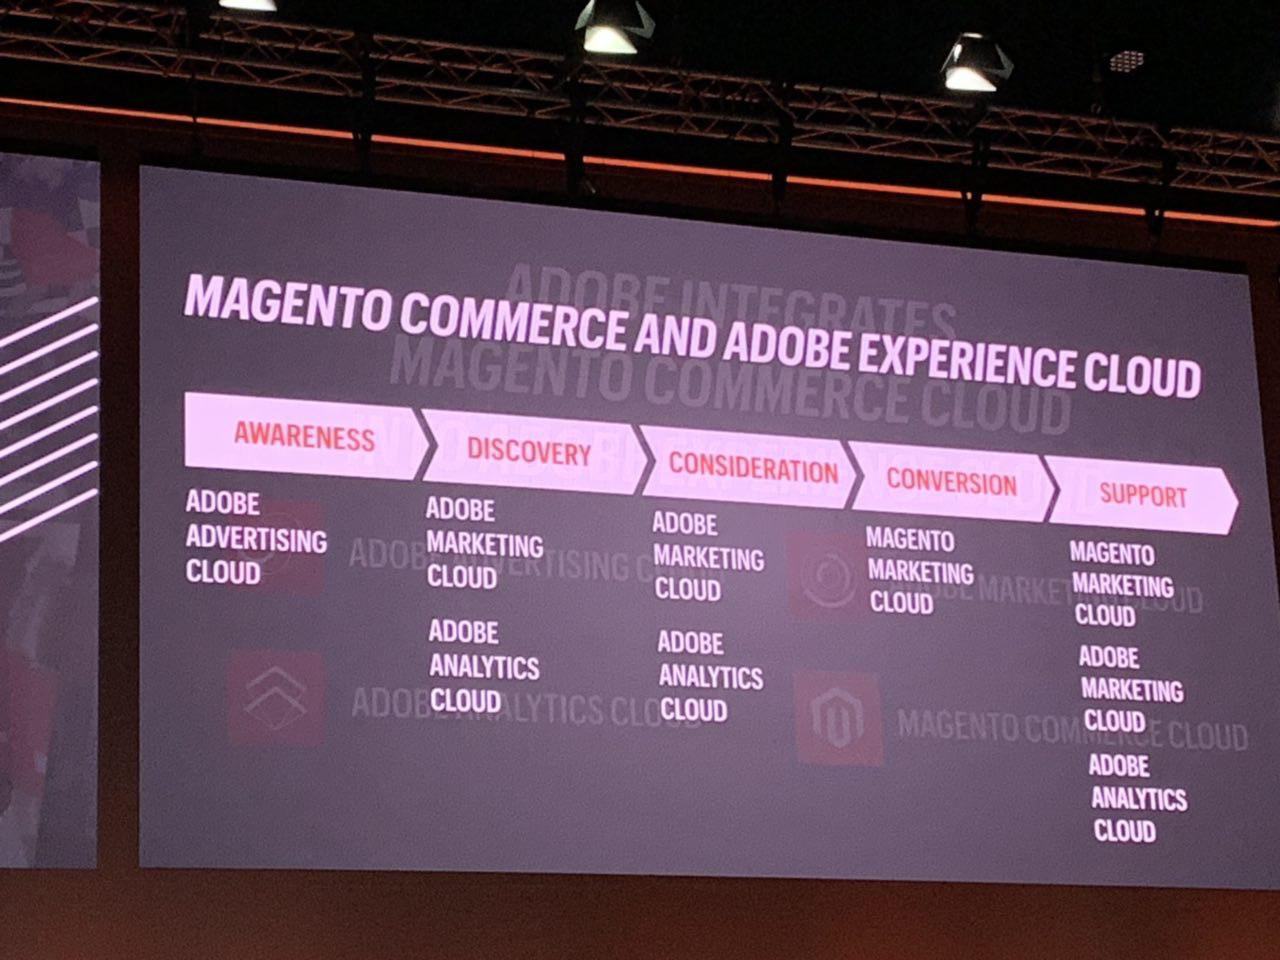 Magento Adobe Experience Cloud